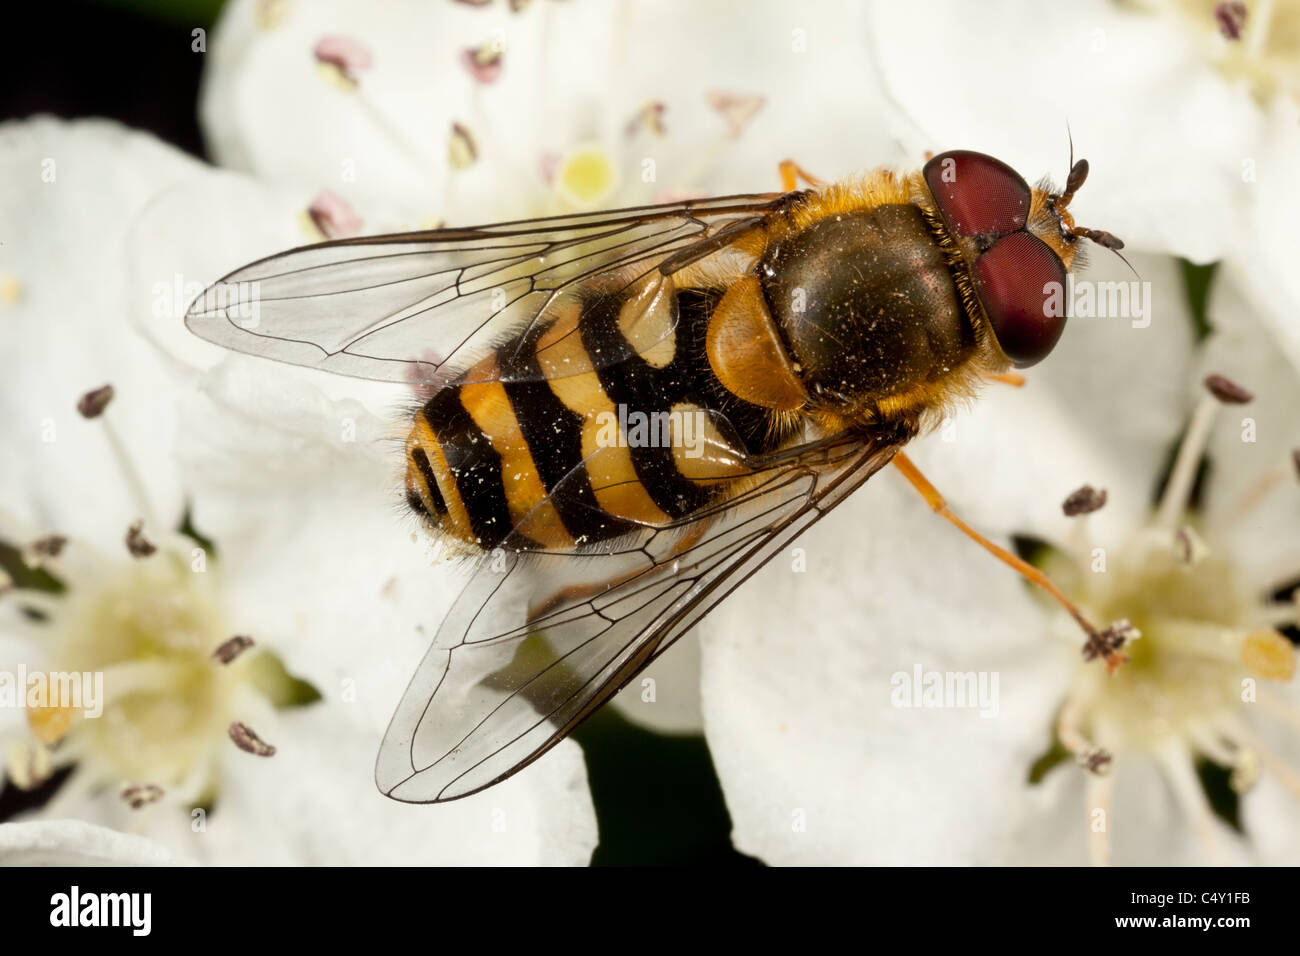 Hoverfly, Syrphus ribesii, Derbyshire, a wasp mimic - Stock Image